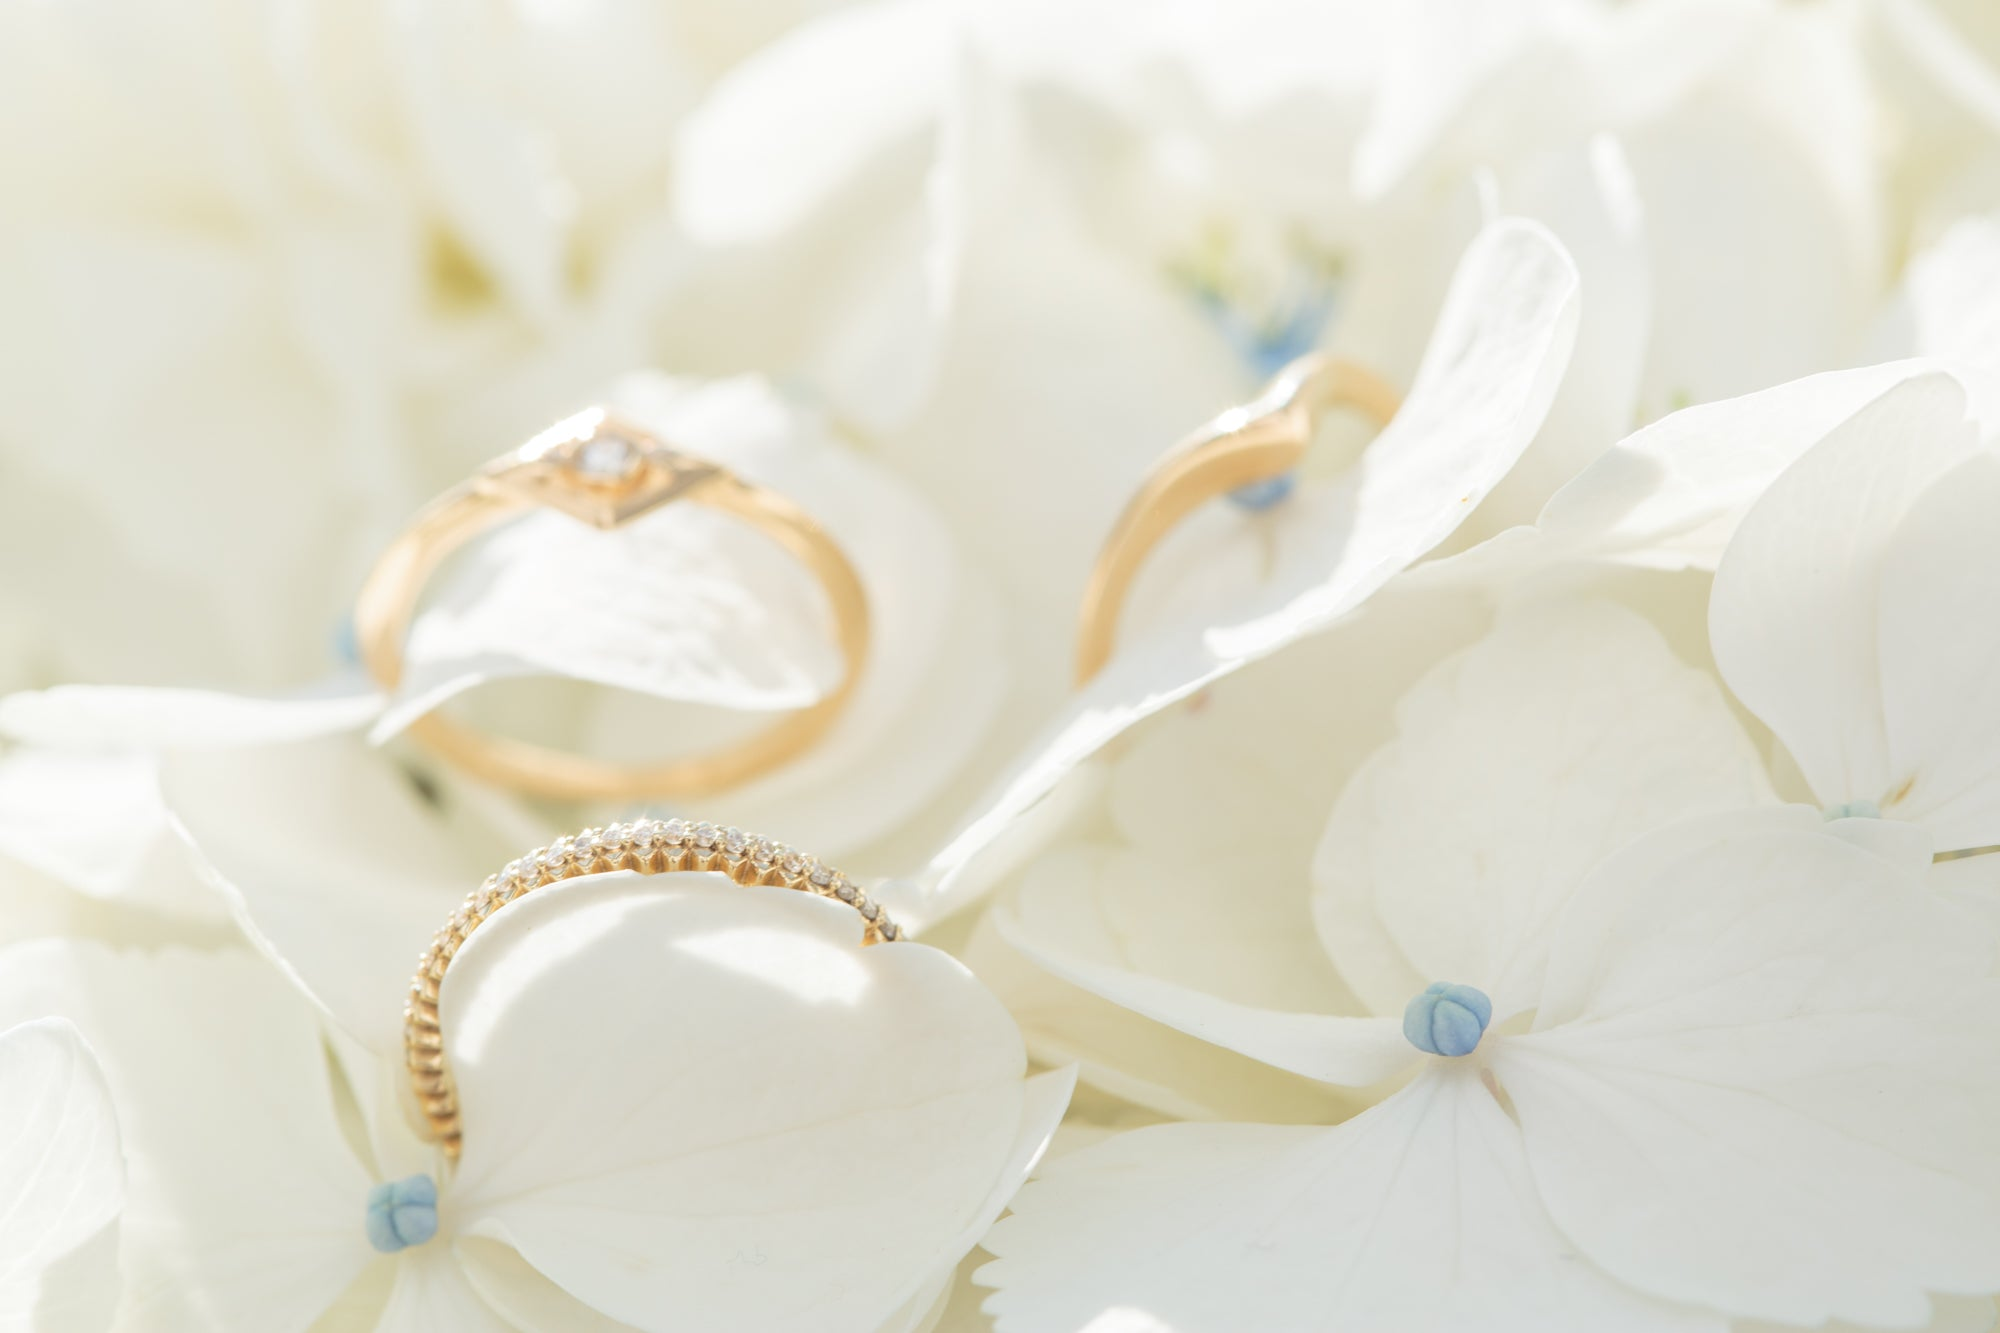 14k and 18k gold rings